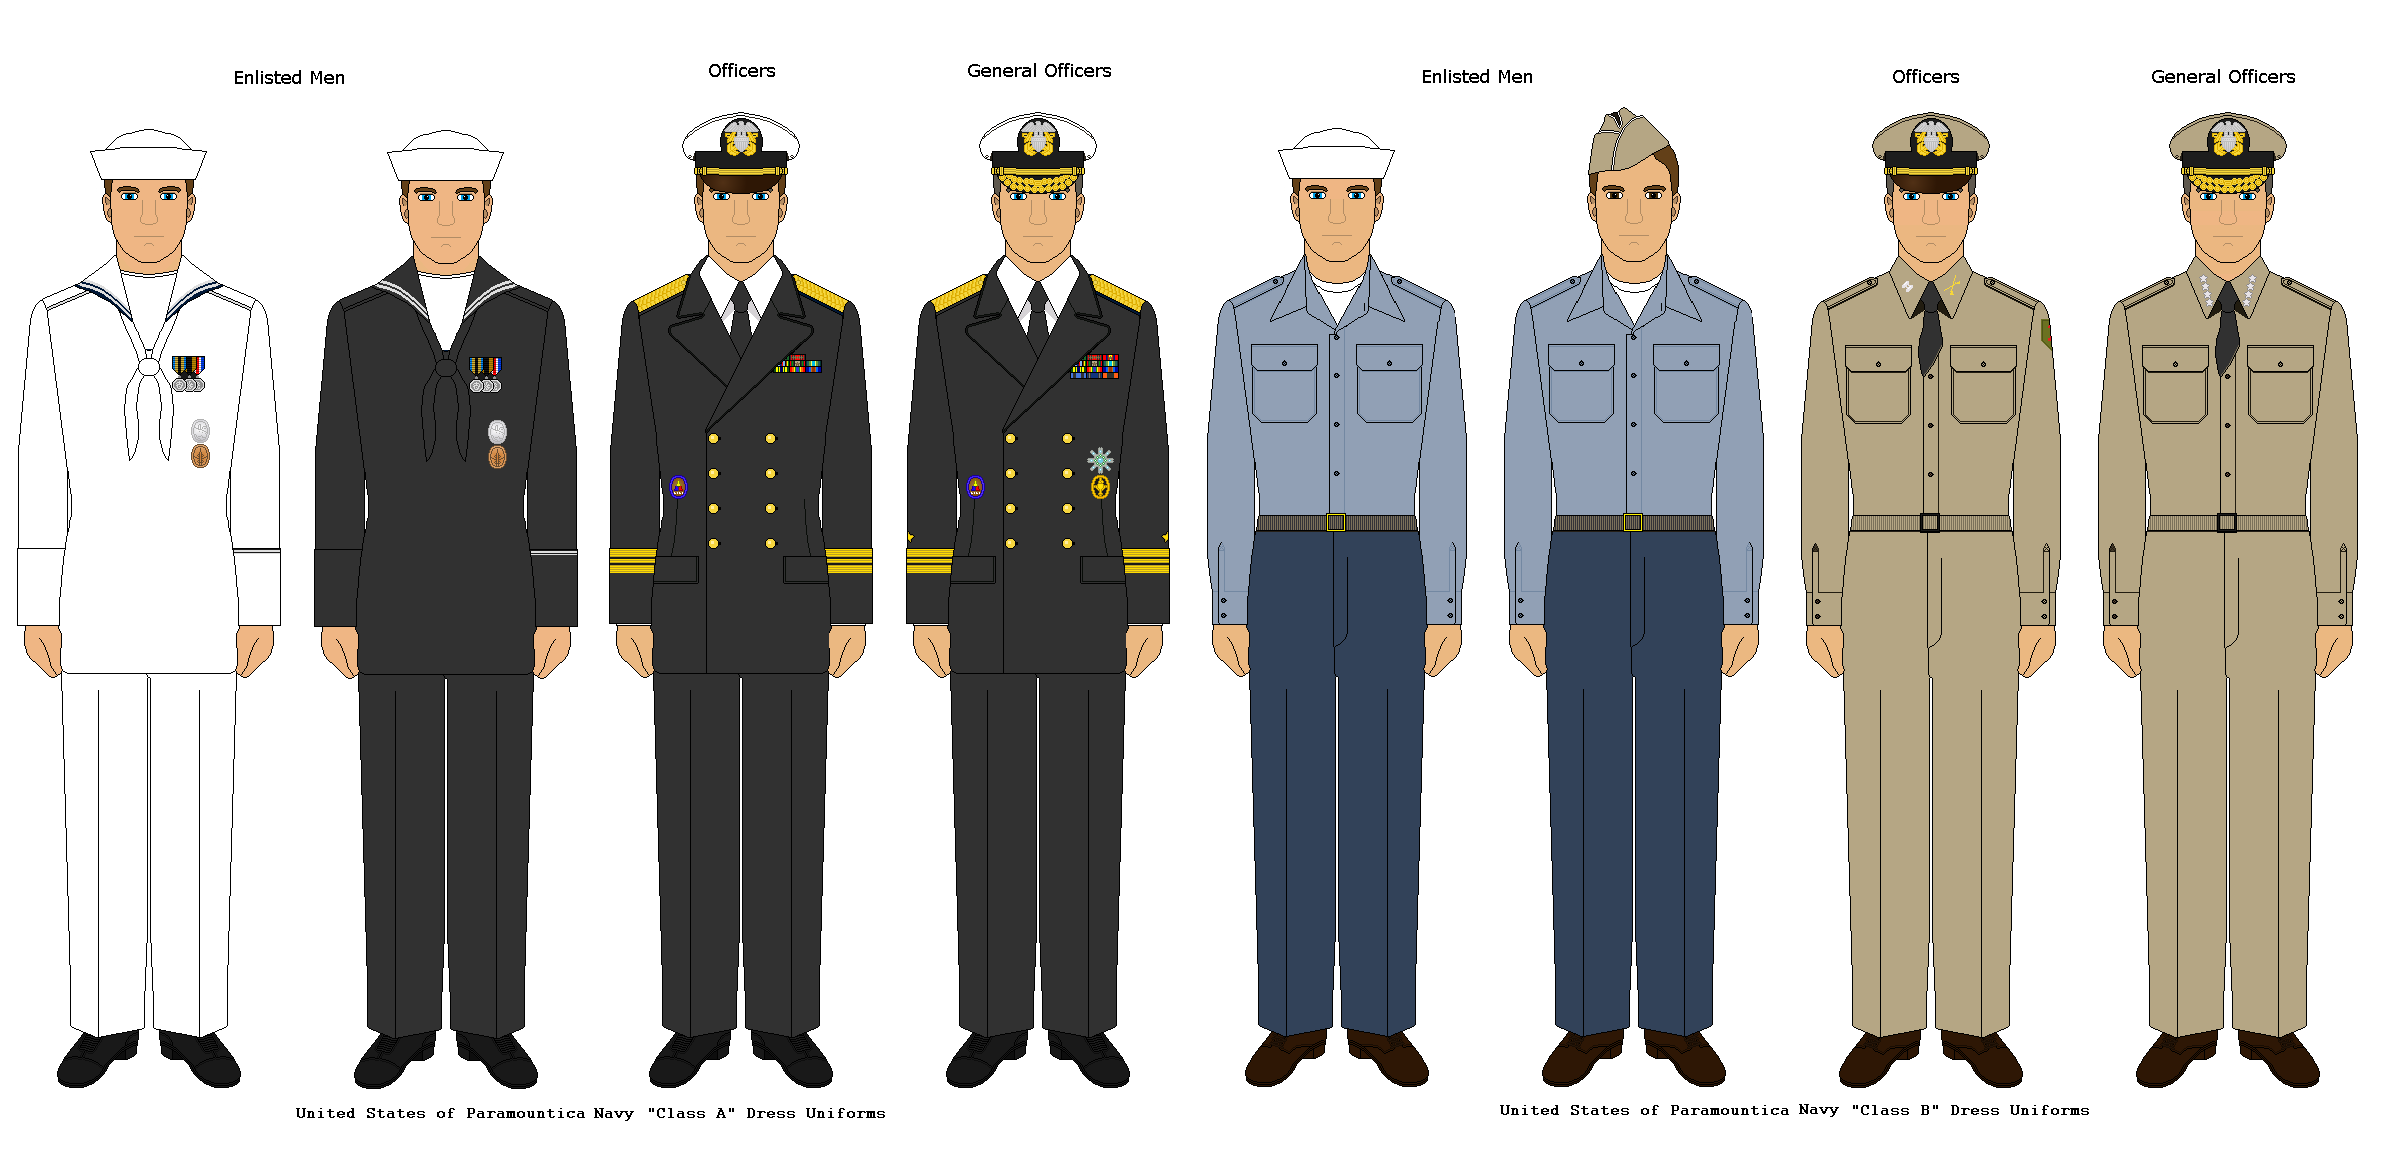 dating us navy uniforms Interested in dating a marine, or looking to date as a navy professional read our guide to the navy dating, and sign up to meet like-minded singles today.